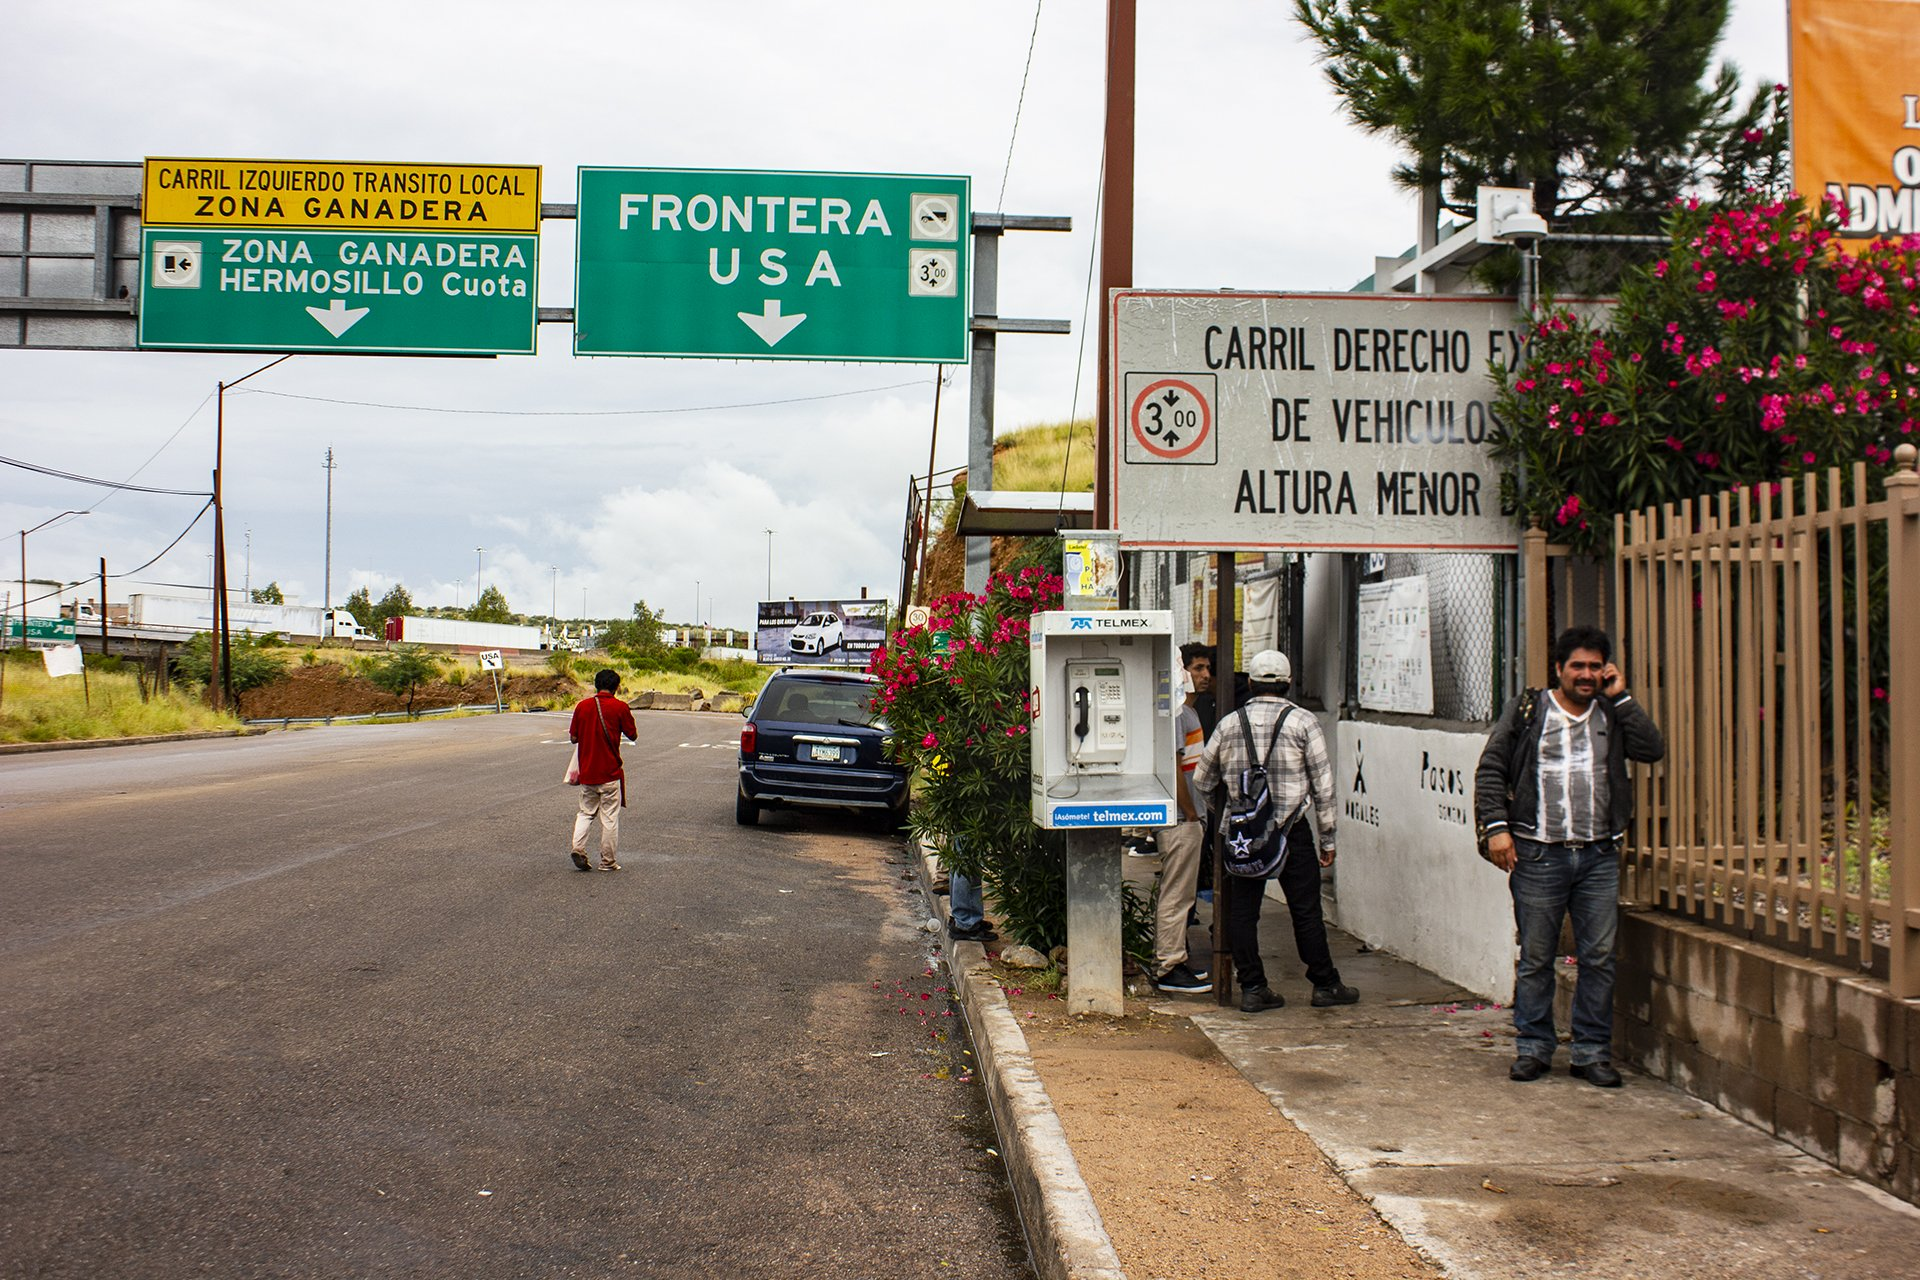 People on a street with a highway sign pointing to the border.